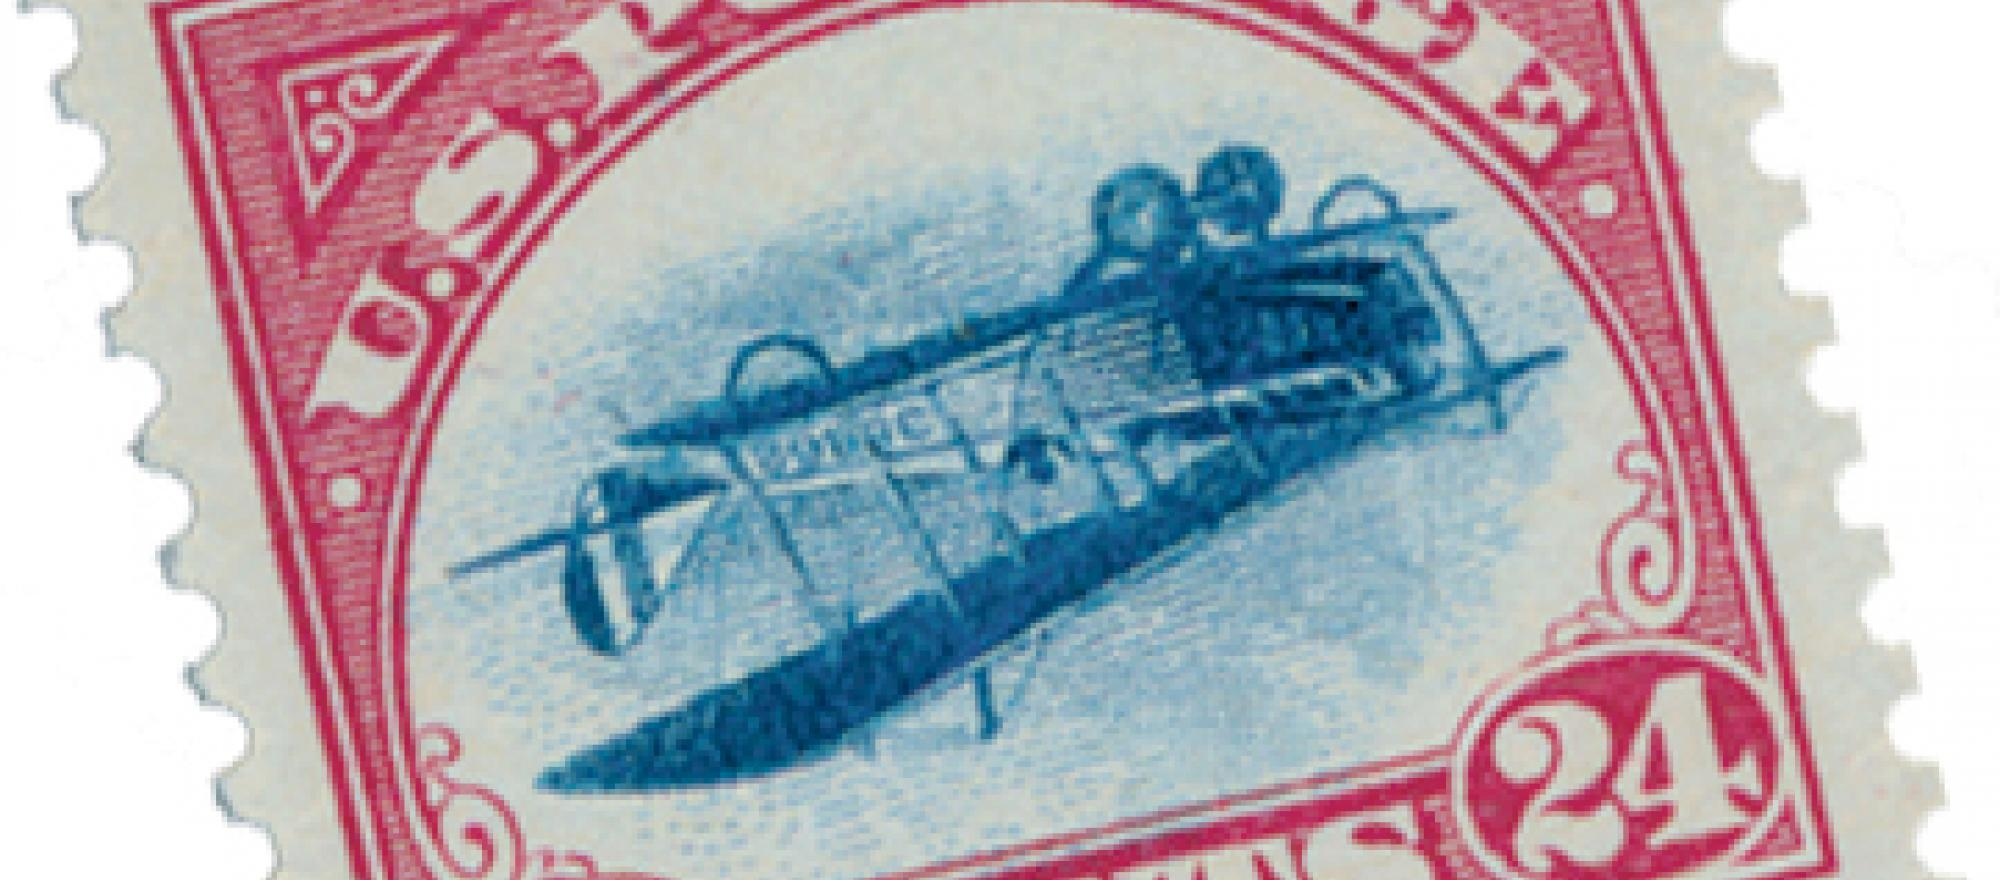 The plate block with an inverted Jenny will cost you $3 million.